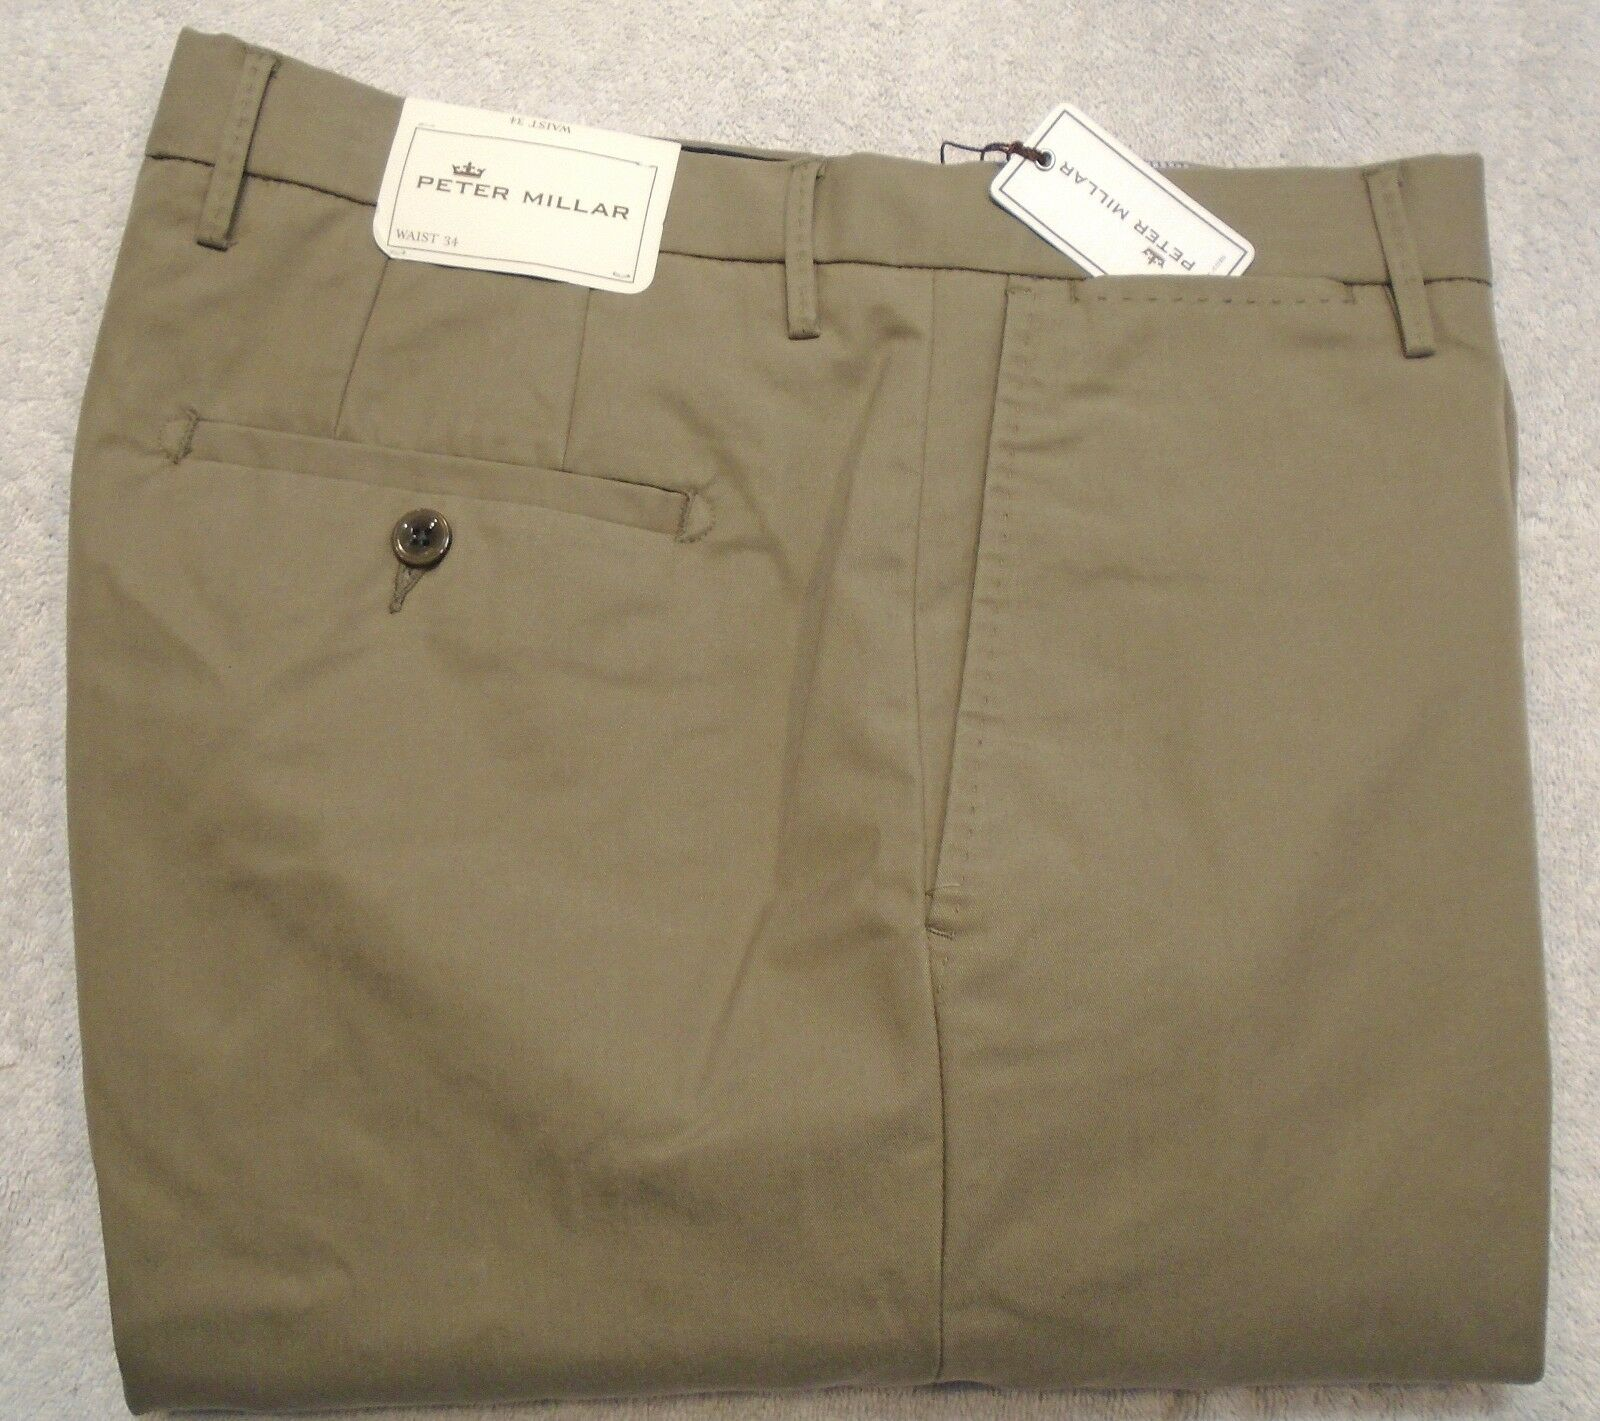 Peter Millar Cotton Blend Performance Fabric Taupe Dress Pants NWT  34 waist